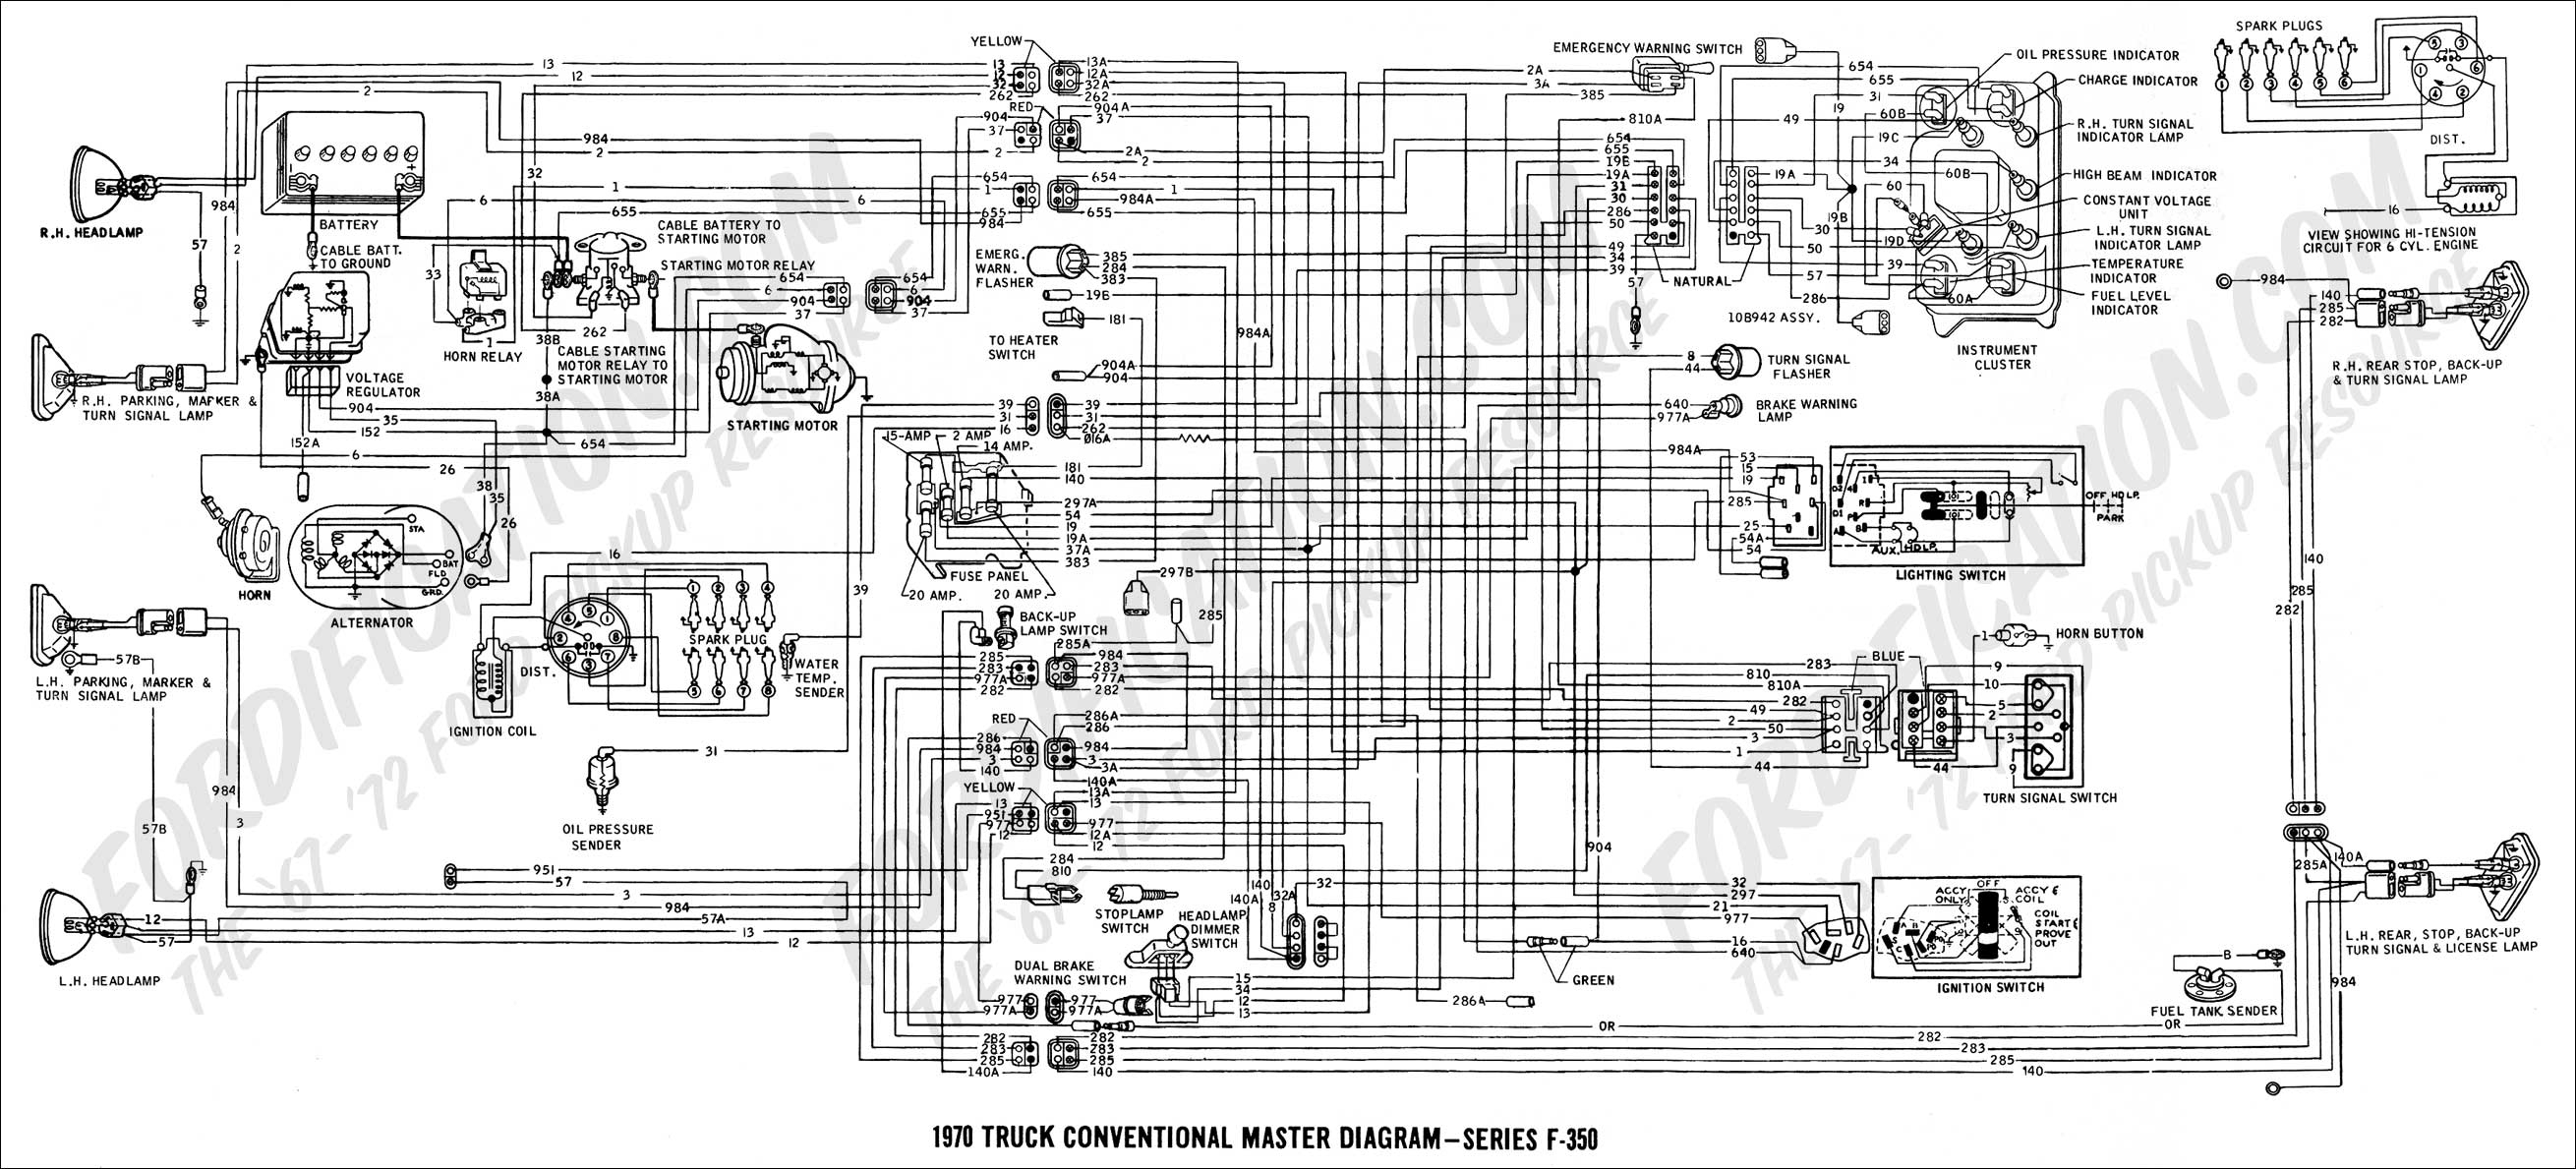 2008 Ford Super Duty Wiring Diagram - Today Wiring Diagram - 2005 F350 Trailer Wiring Diagram